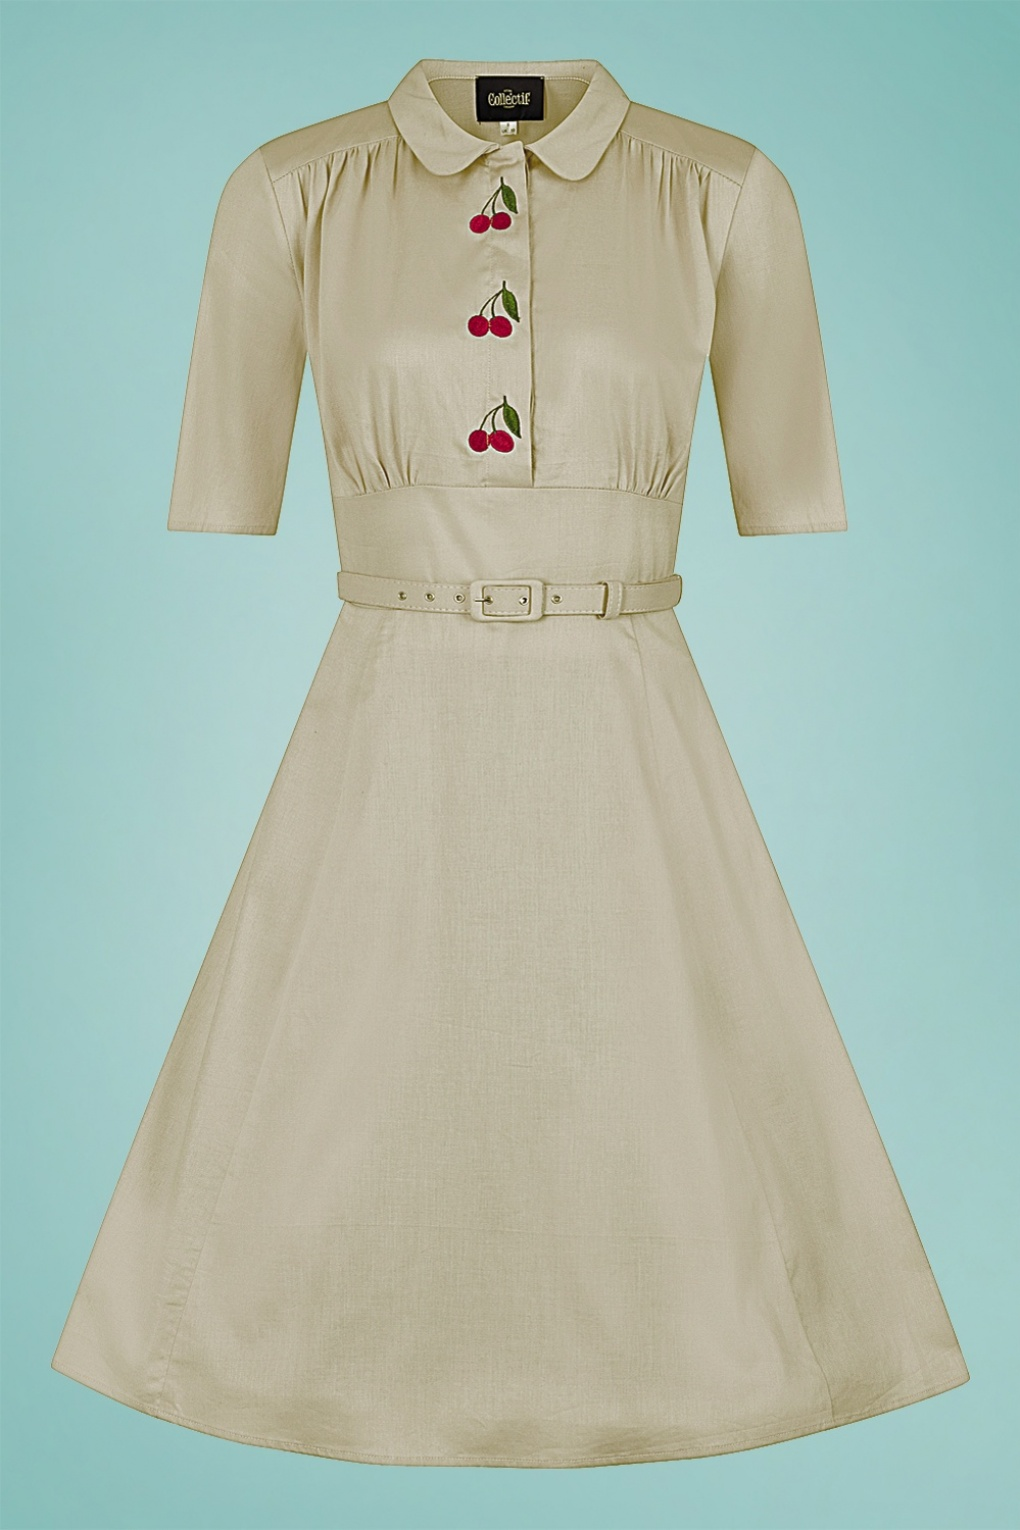 1940s Dresses | 40s Dress, Swing Dress 40s Doriane Cherry Swing Dress in Beige £69.30 AT vintagedancer.com